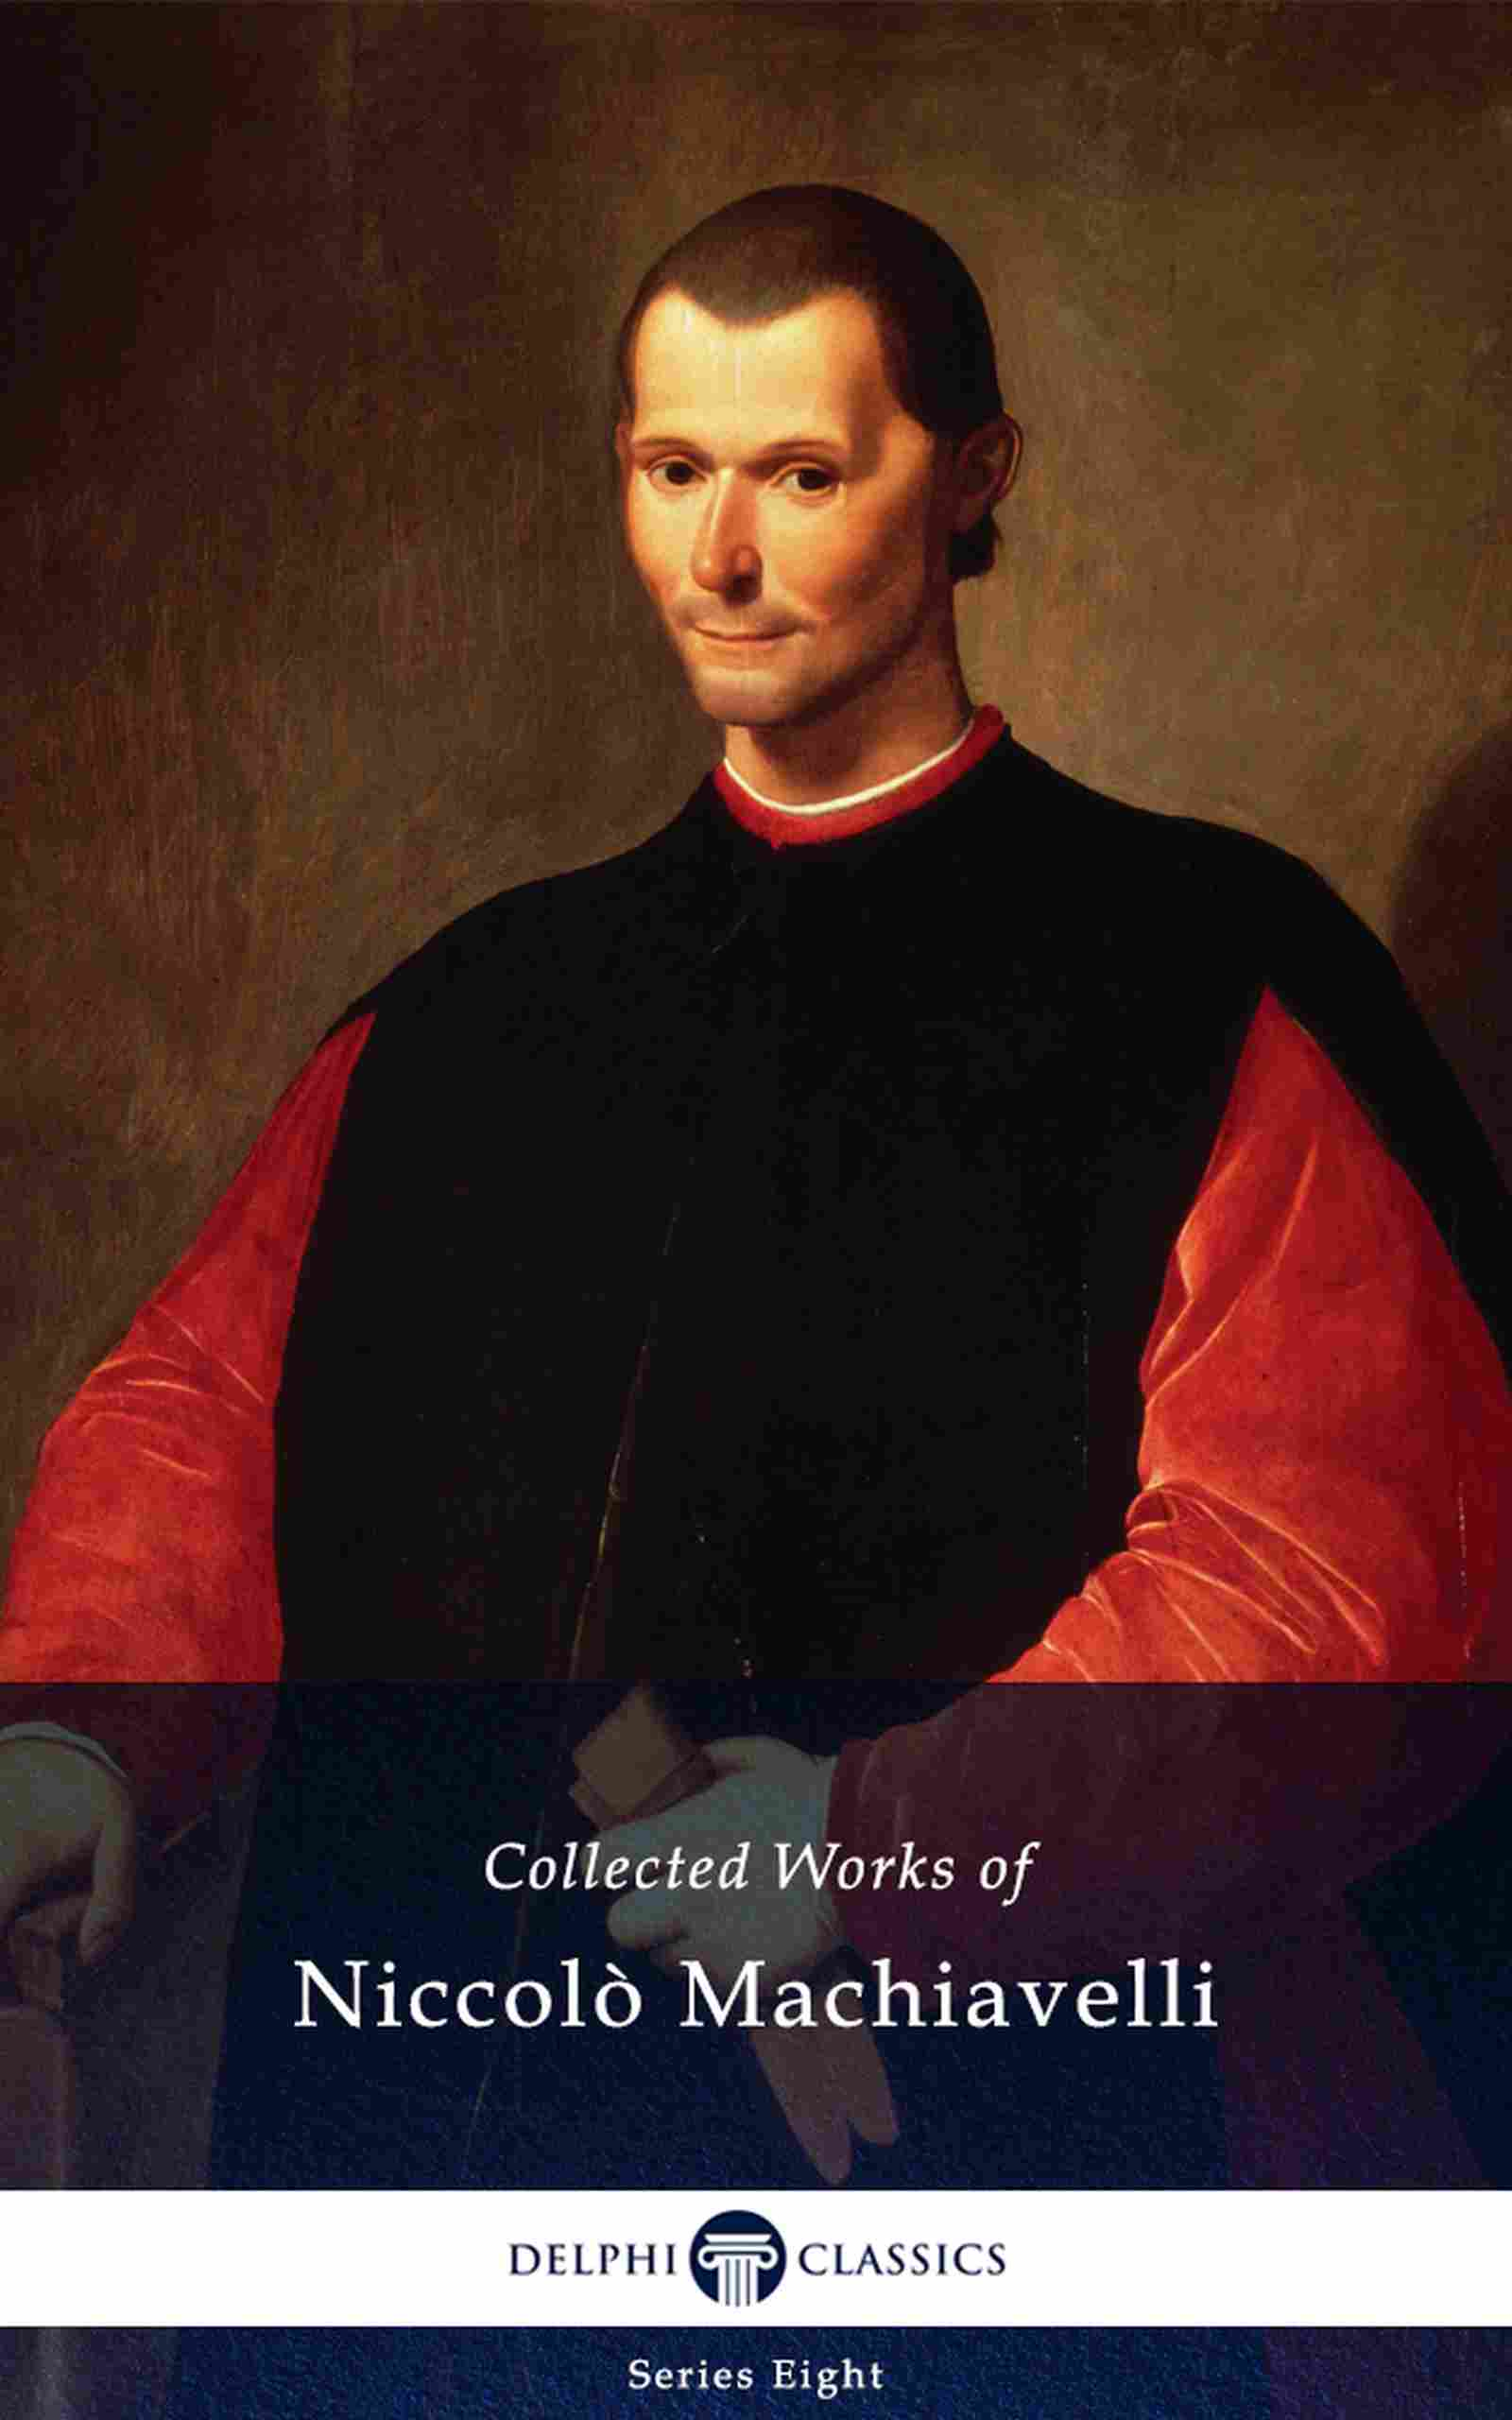 an overview of the philosophy of niccolo machiavelli a controversial humanist This is one sense in which machiavelli's work can be described as humanist it is also humanist in that it systematically excludes religion from playing any positive role in the governance of the.